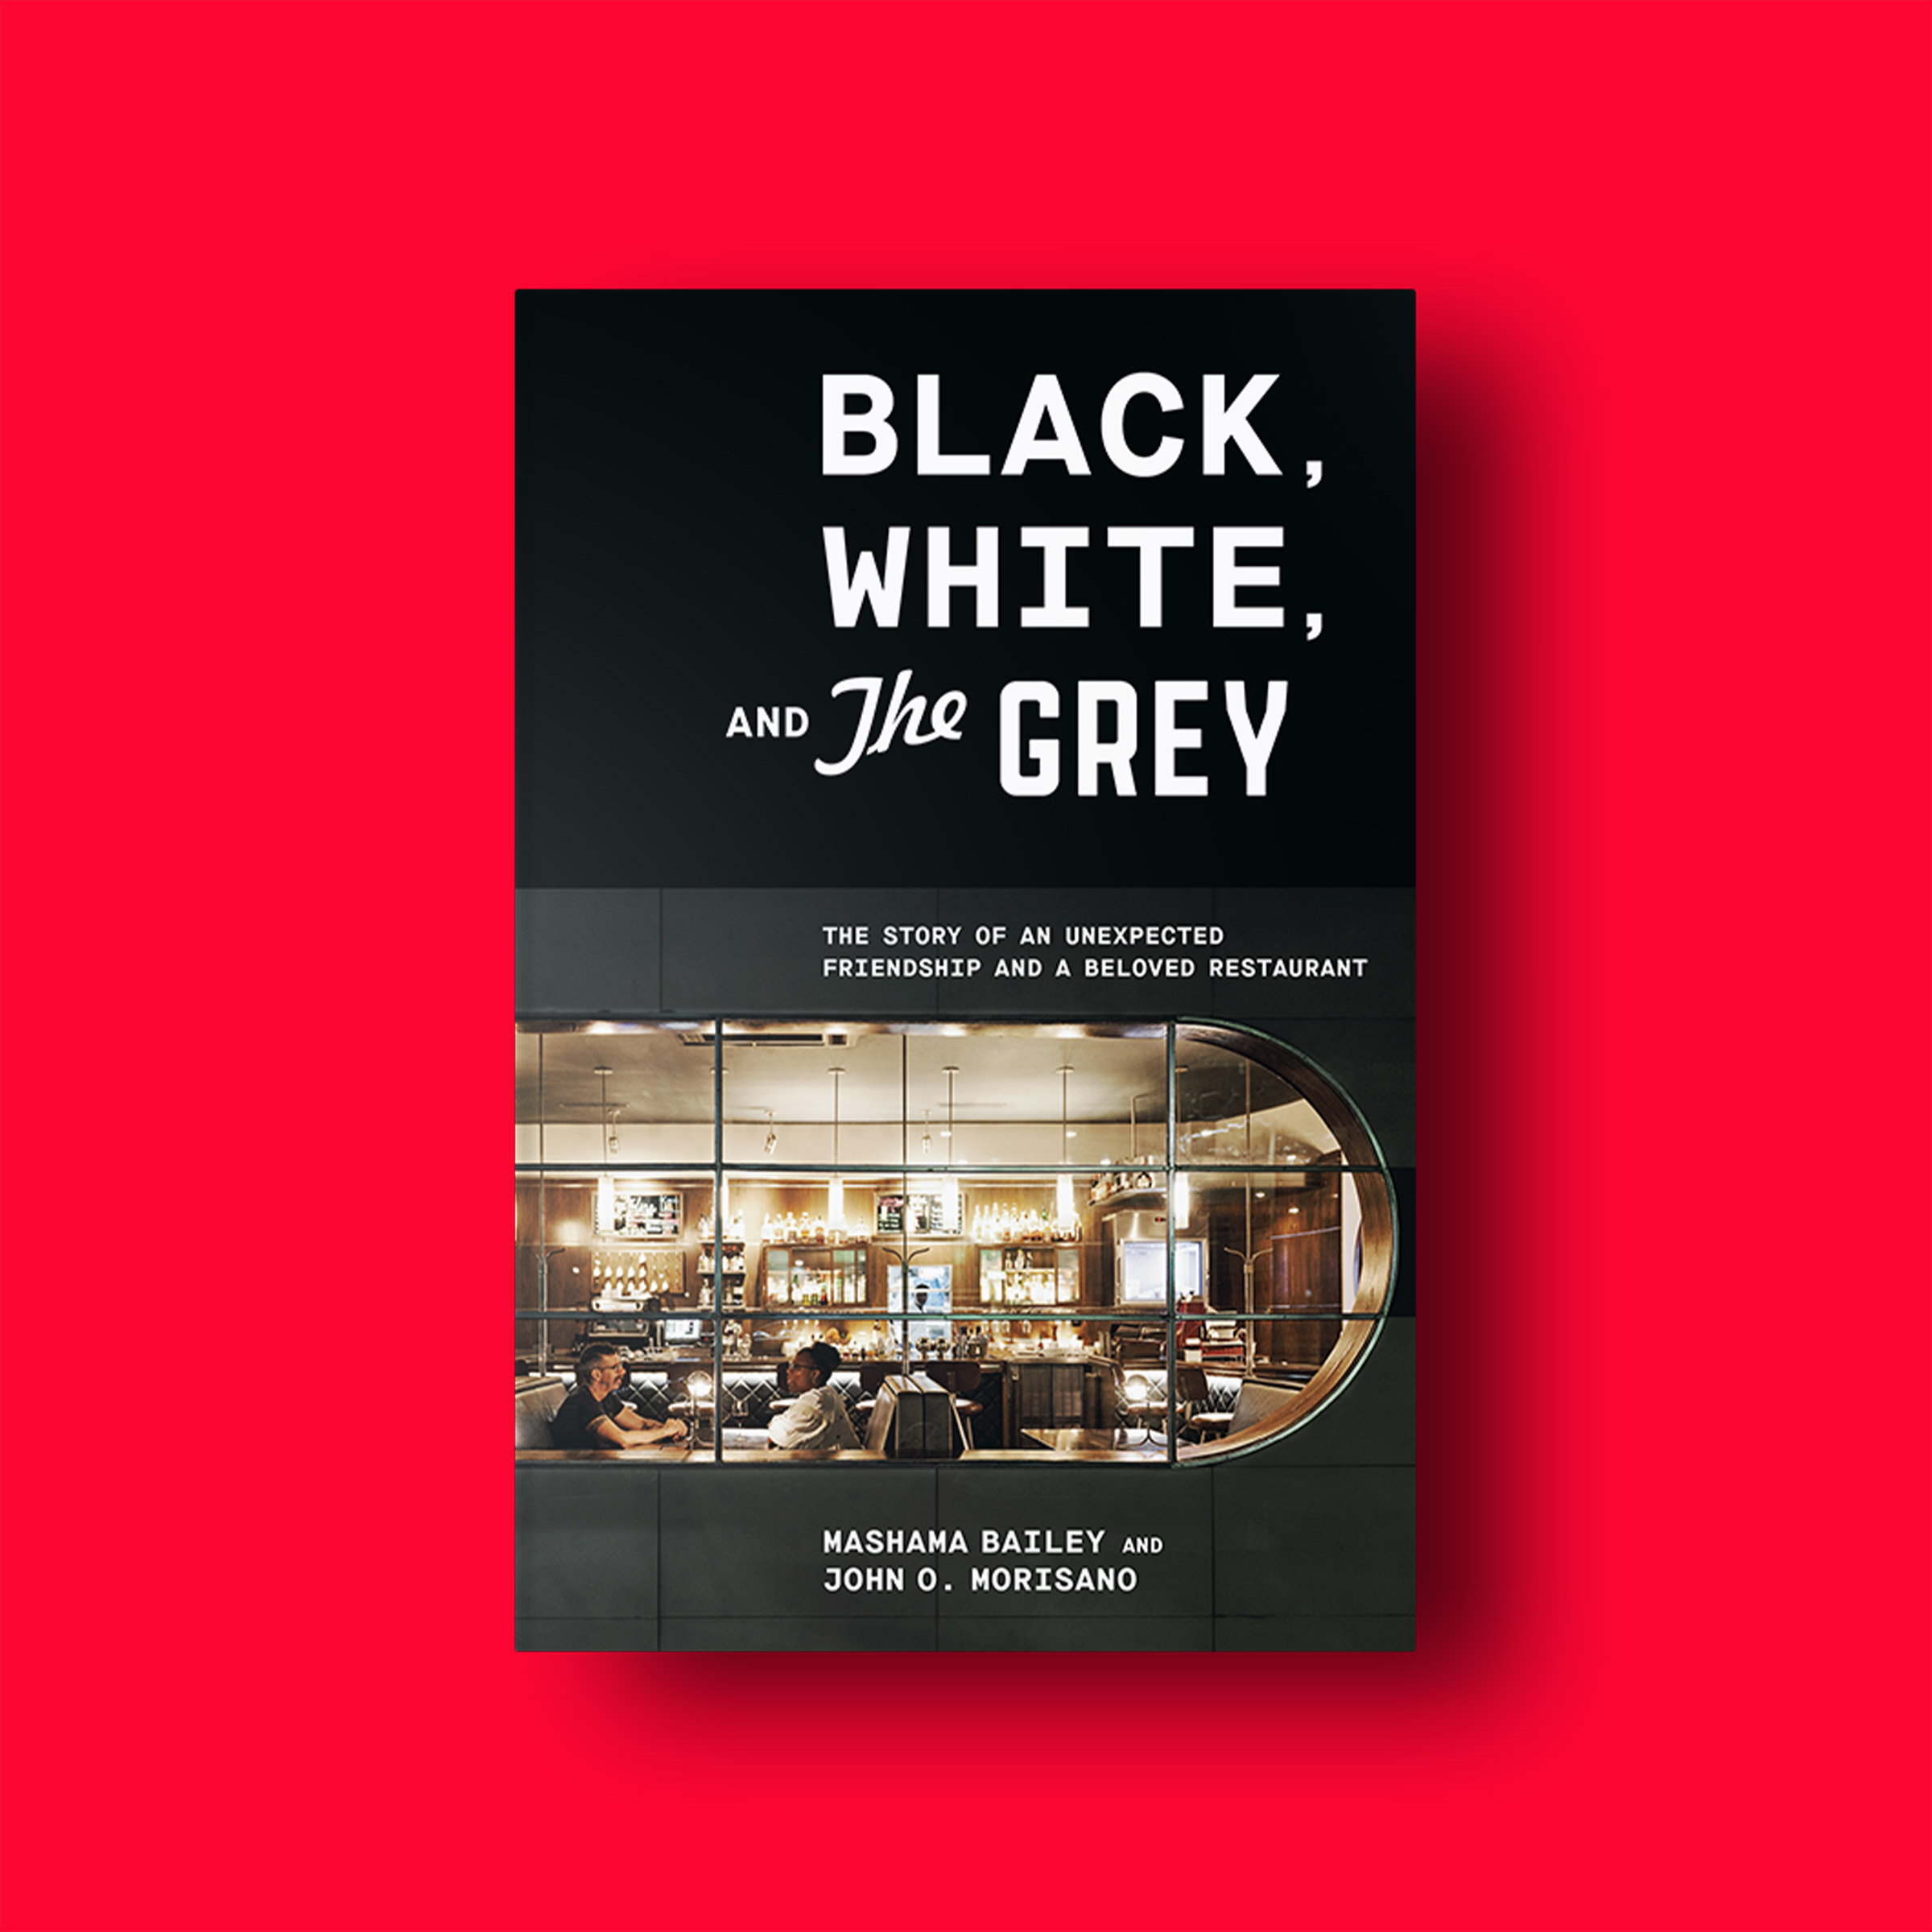 Black, White, and The Grey Excerpt